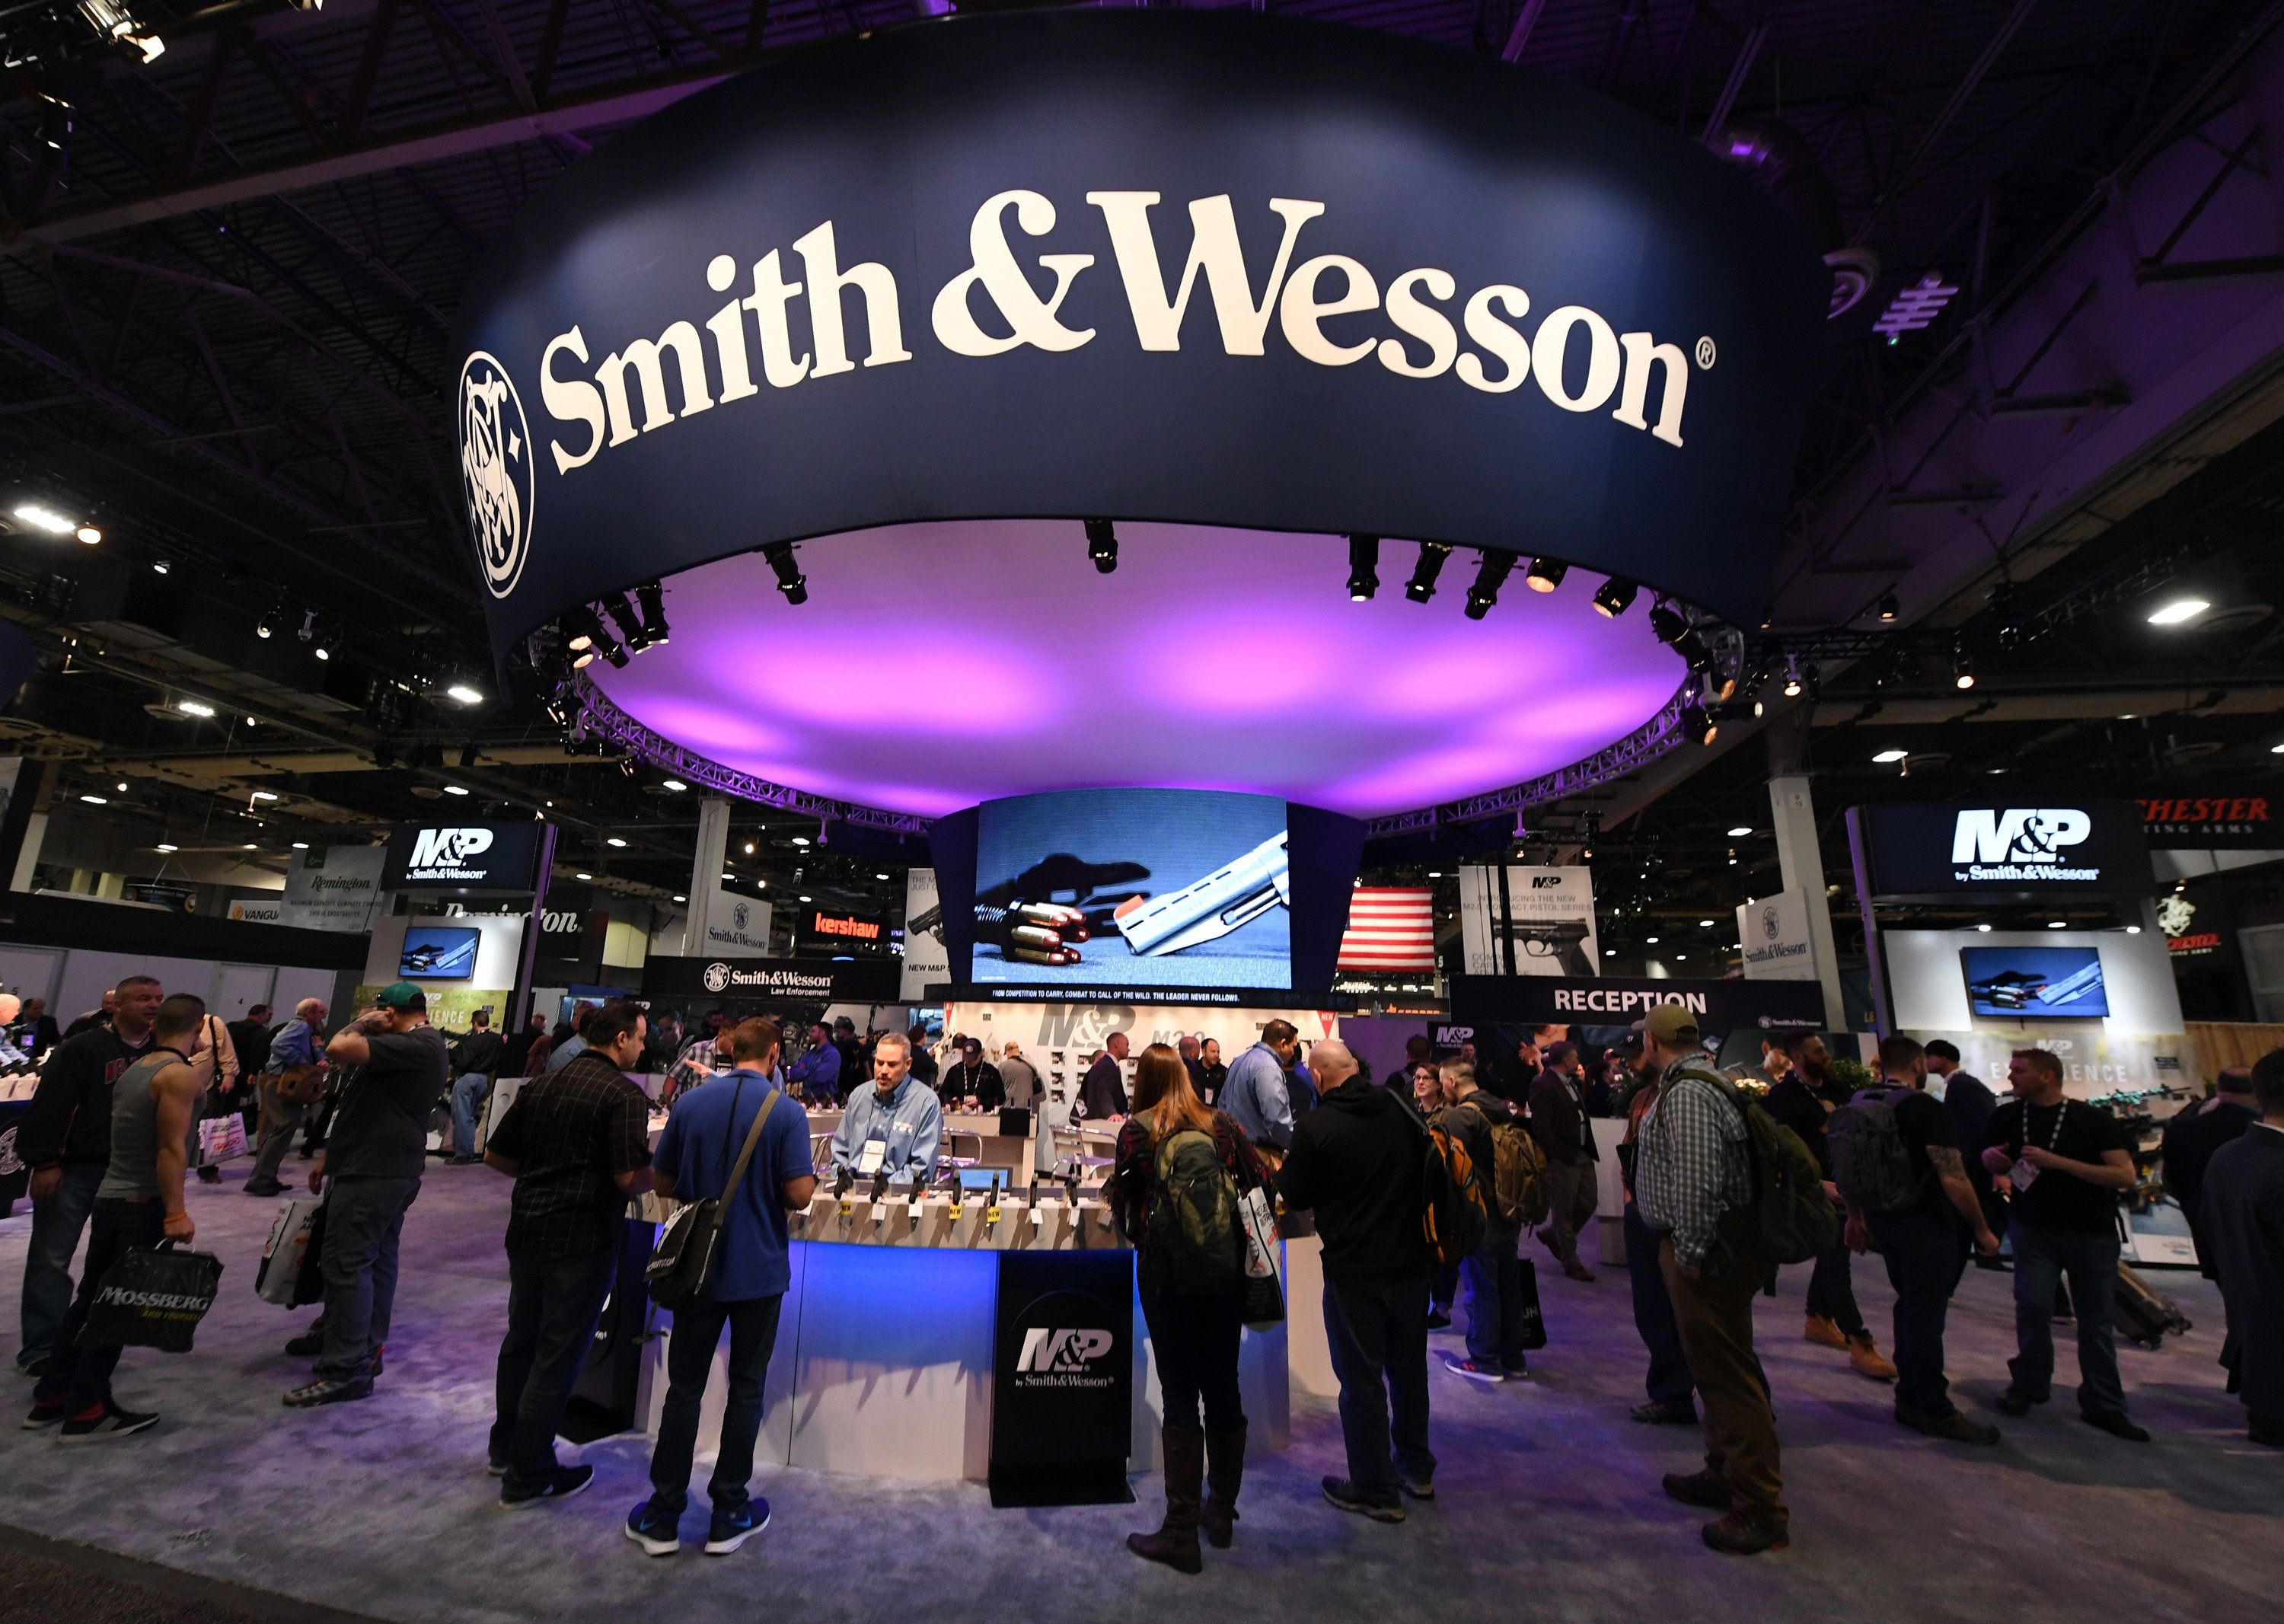 LAS VEGAS, NV - JANUARY 23:  Attendees visit the Smith & Wesson booth at the 2018 National Shooting Sports Foundation's Shooting, Hunting, Outdoor Trade (SHOT) Show at the Sands Expo and Convention Center on January 23, 2018 in Las Vegas, Nevada. The SHOT Show, the world's largest annual trade show for shooting, hunting and law enforcement professionals, runs through January 26 and is expected to feature about 1,600 exhibitors showing off their latest products and services to more than 60,000 attendees.  (Photo by Ethan Miller/Getty Images)